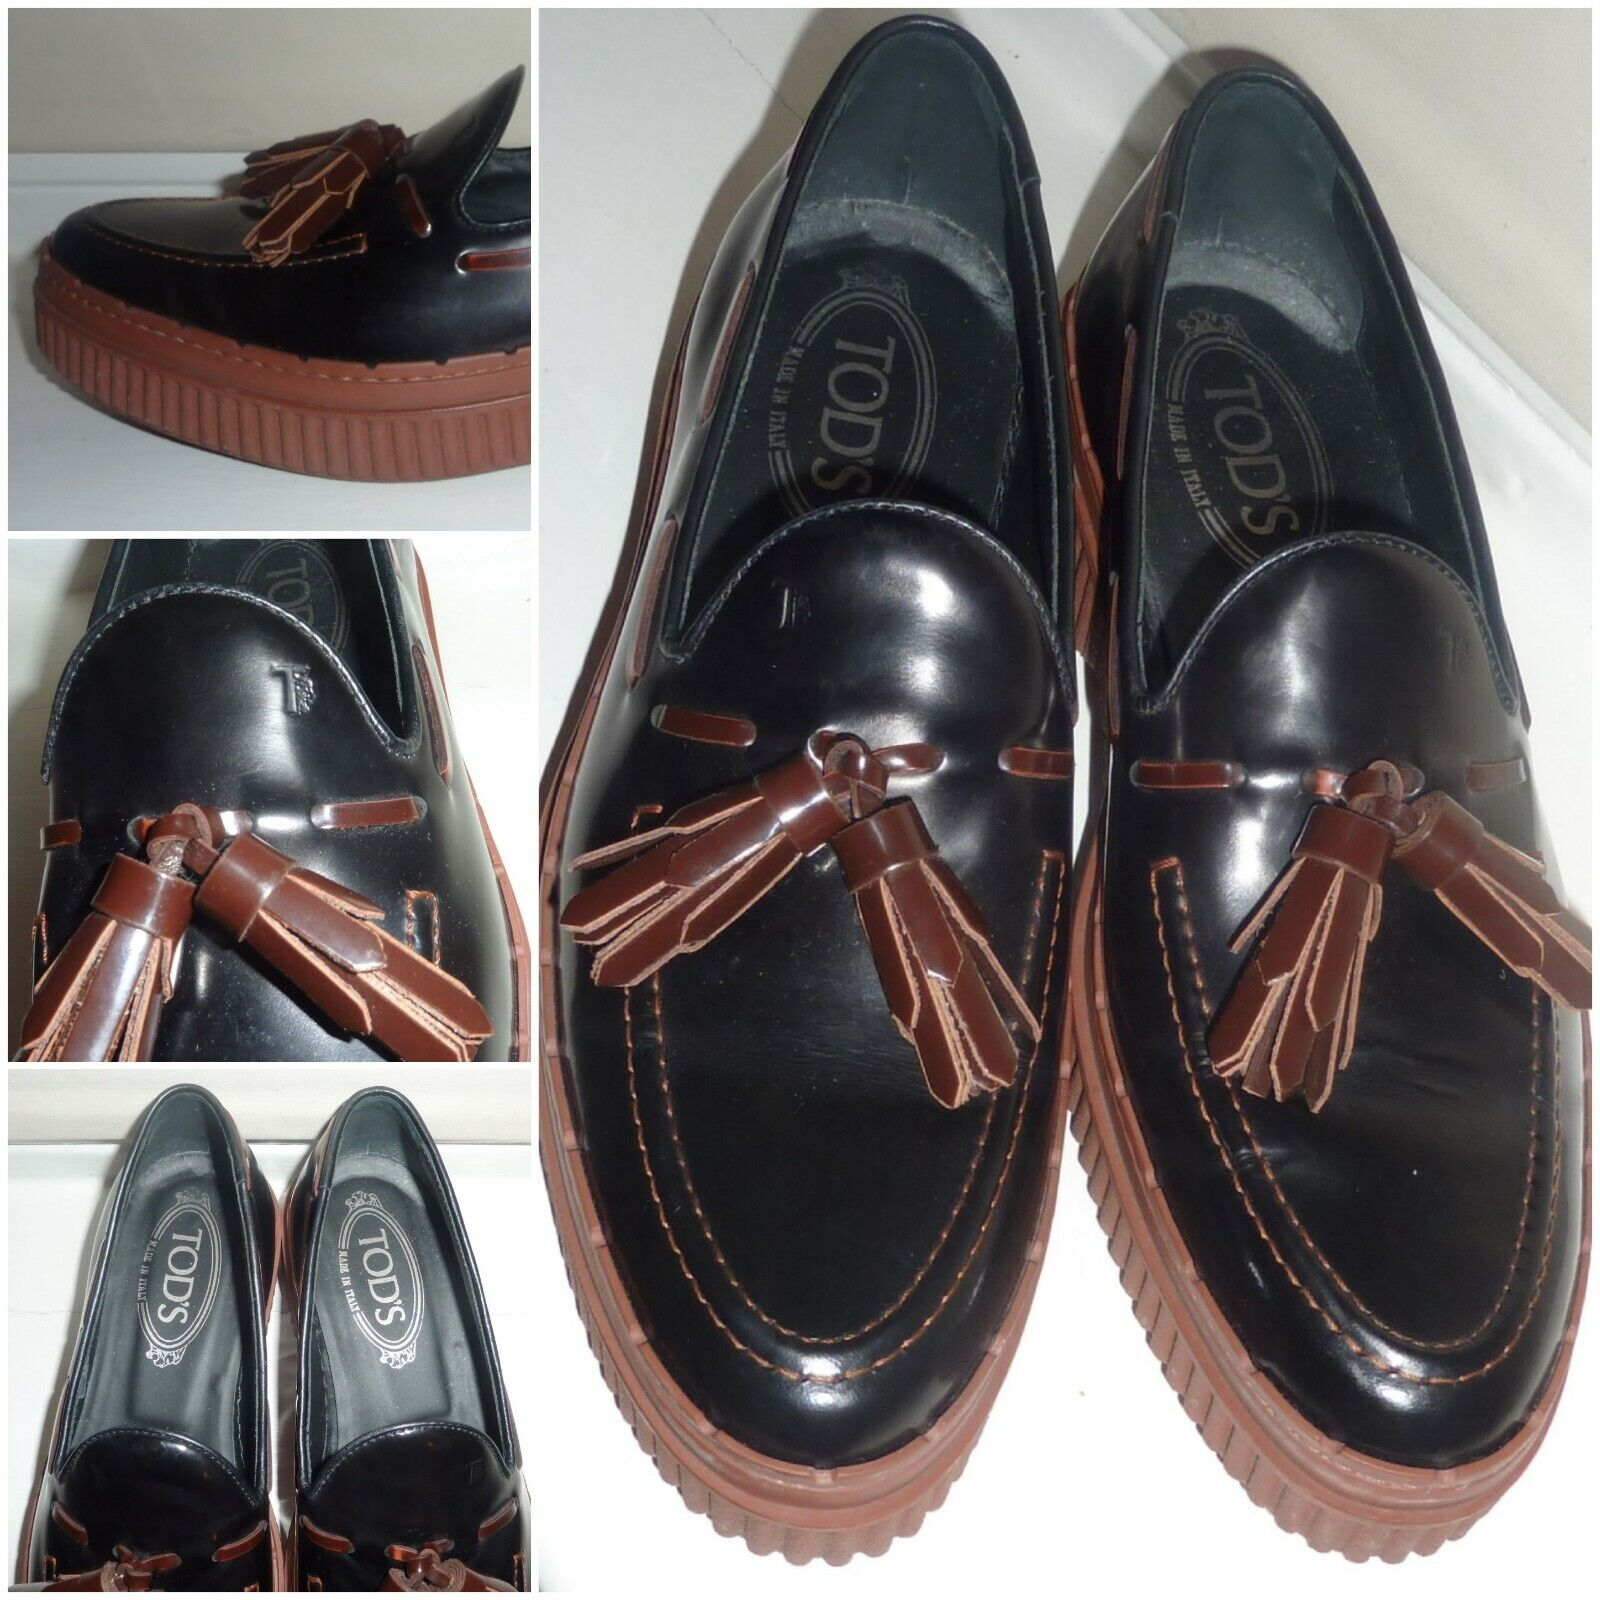 TODS LEATHER PATENT TASSLE LOAFERS - SIZE 4.5 (EURO 37.5) - NEW WITHOUT BOX